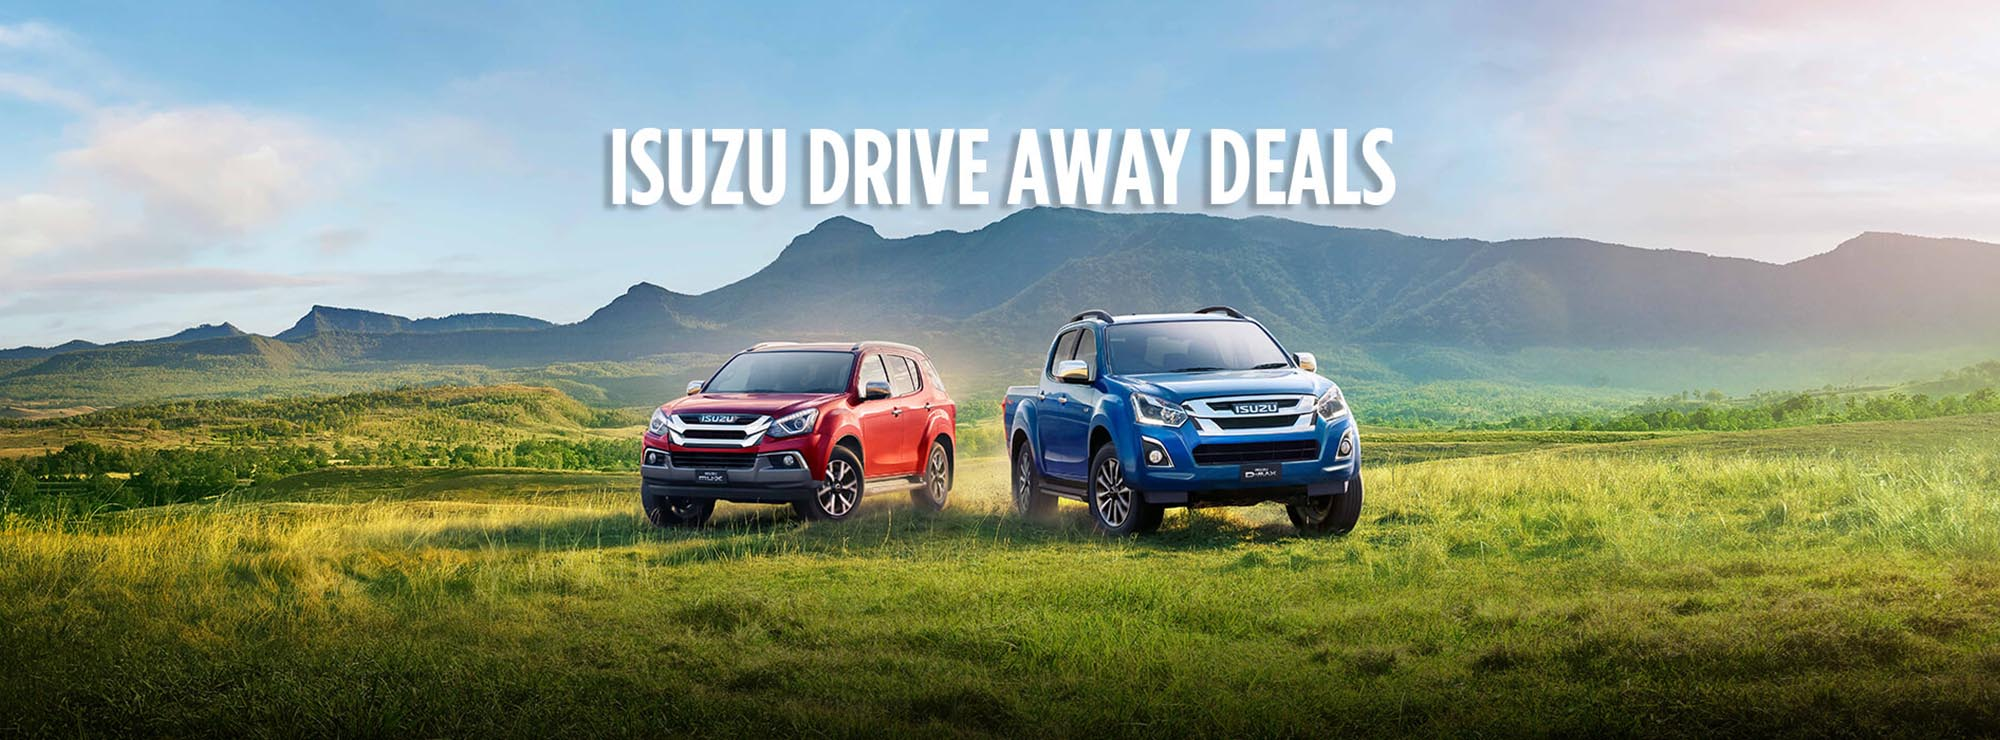 Isuzu UTE Drive Away Deals